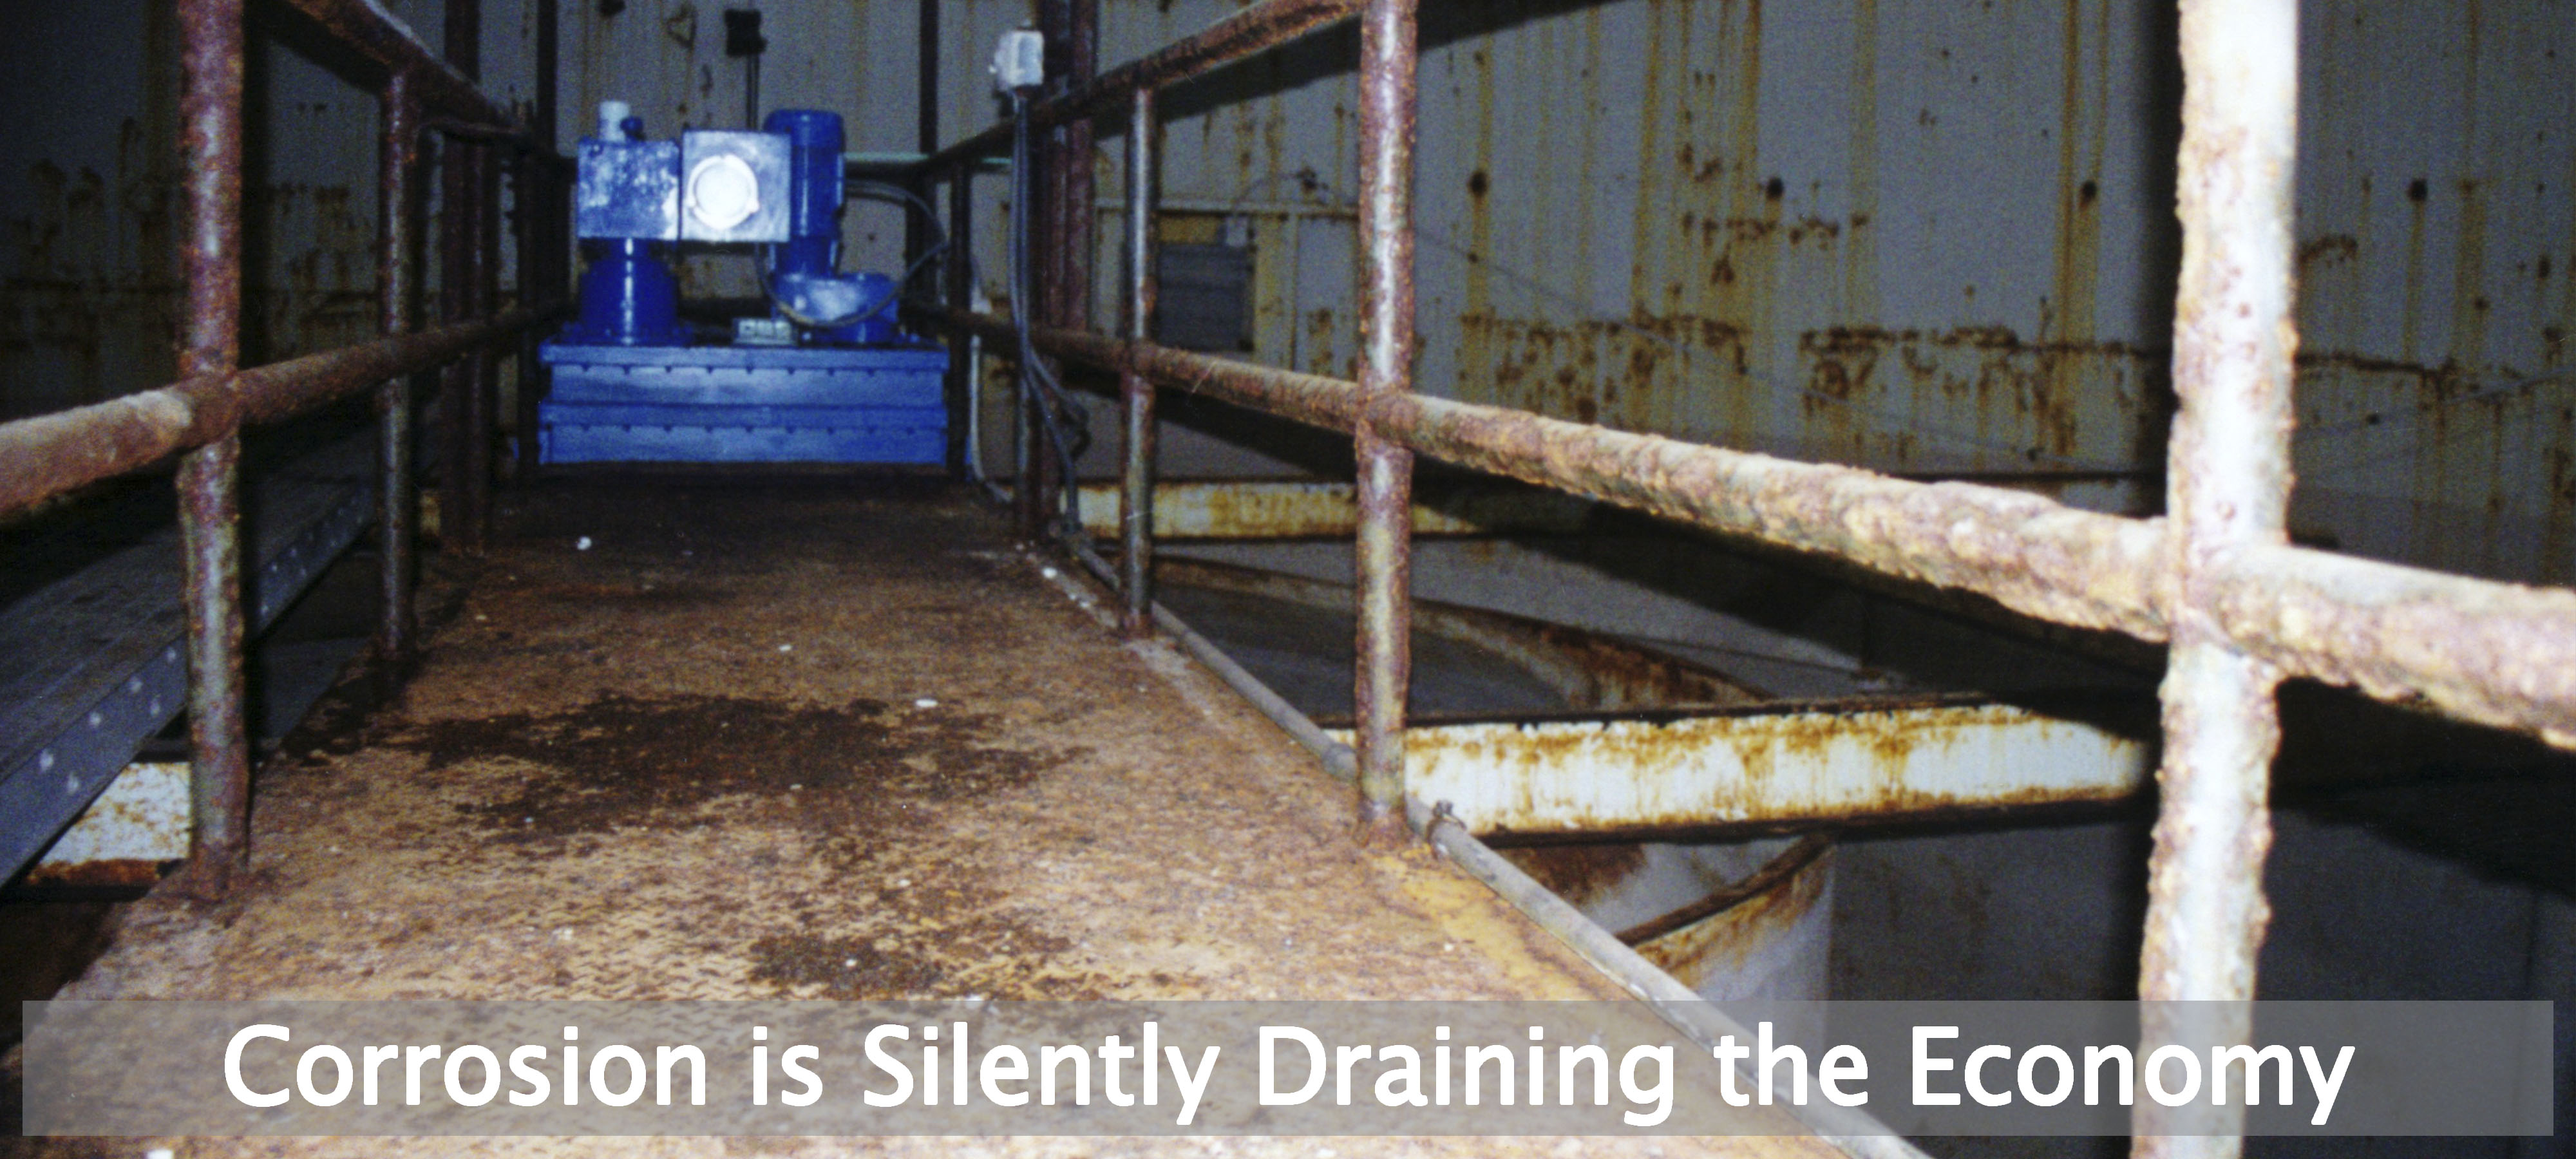 Corrosion-is-Silently-Draining-the-Economy.jpg